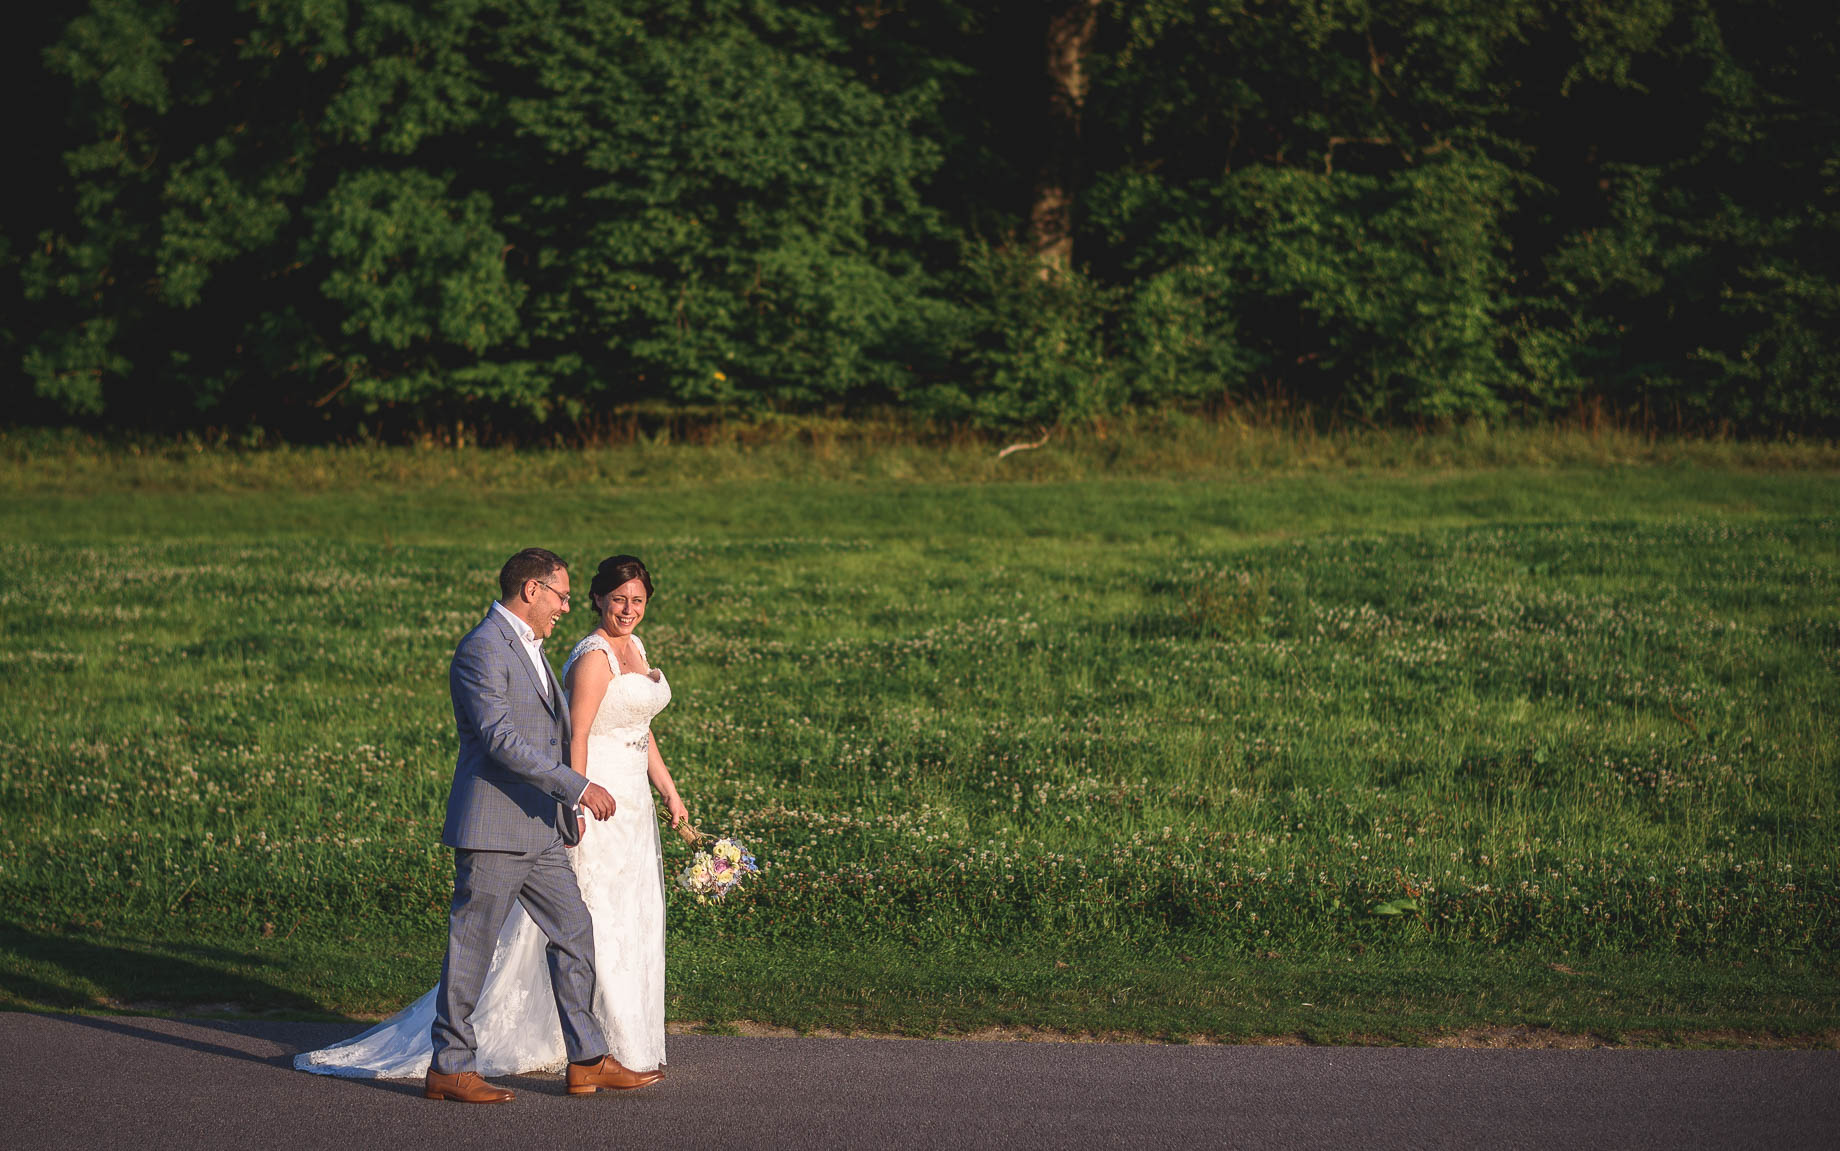 Luton Hoo wedding photography by Guy Collier Photography - Lauren and Gem (148 of 178)